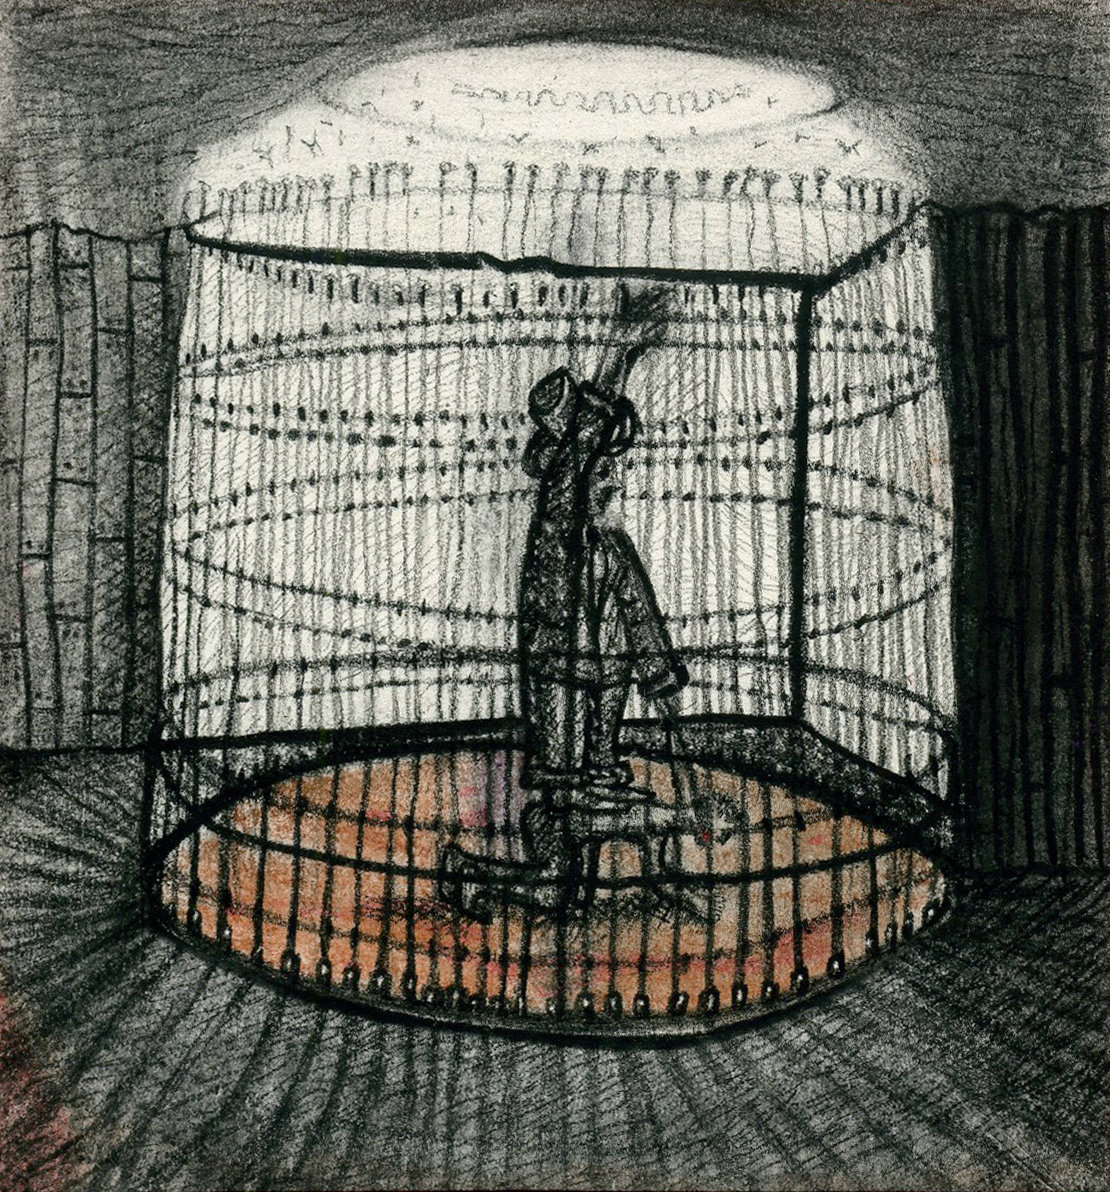 """3. """"Albert decided the best way to control & train his ego was to every night before sleeping, ride it like a circus animal. For this purpose he constructed a circular cage."""" Pastel, 10x10cm, 2010"""